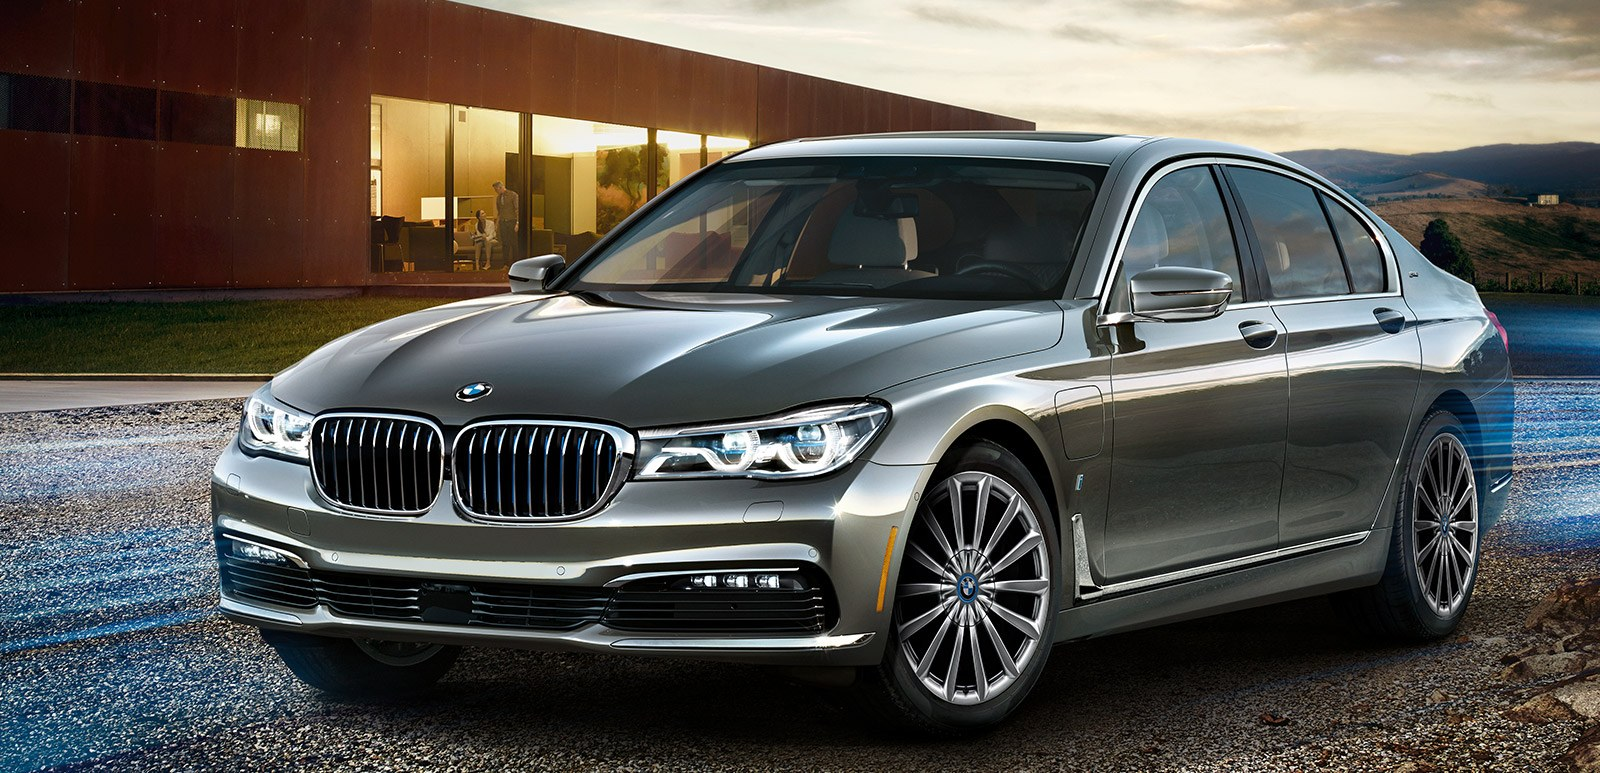 2018 Bmw 740e Xdrive Iperformance Front Exterior